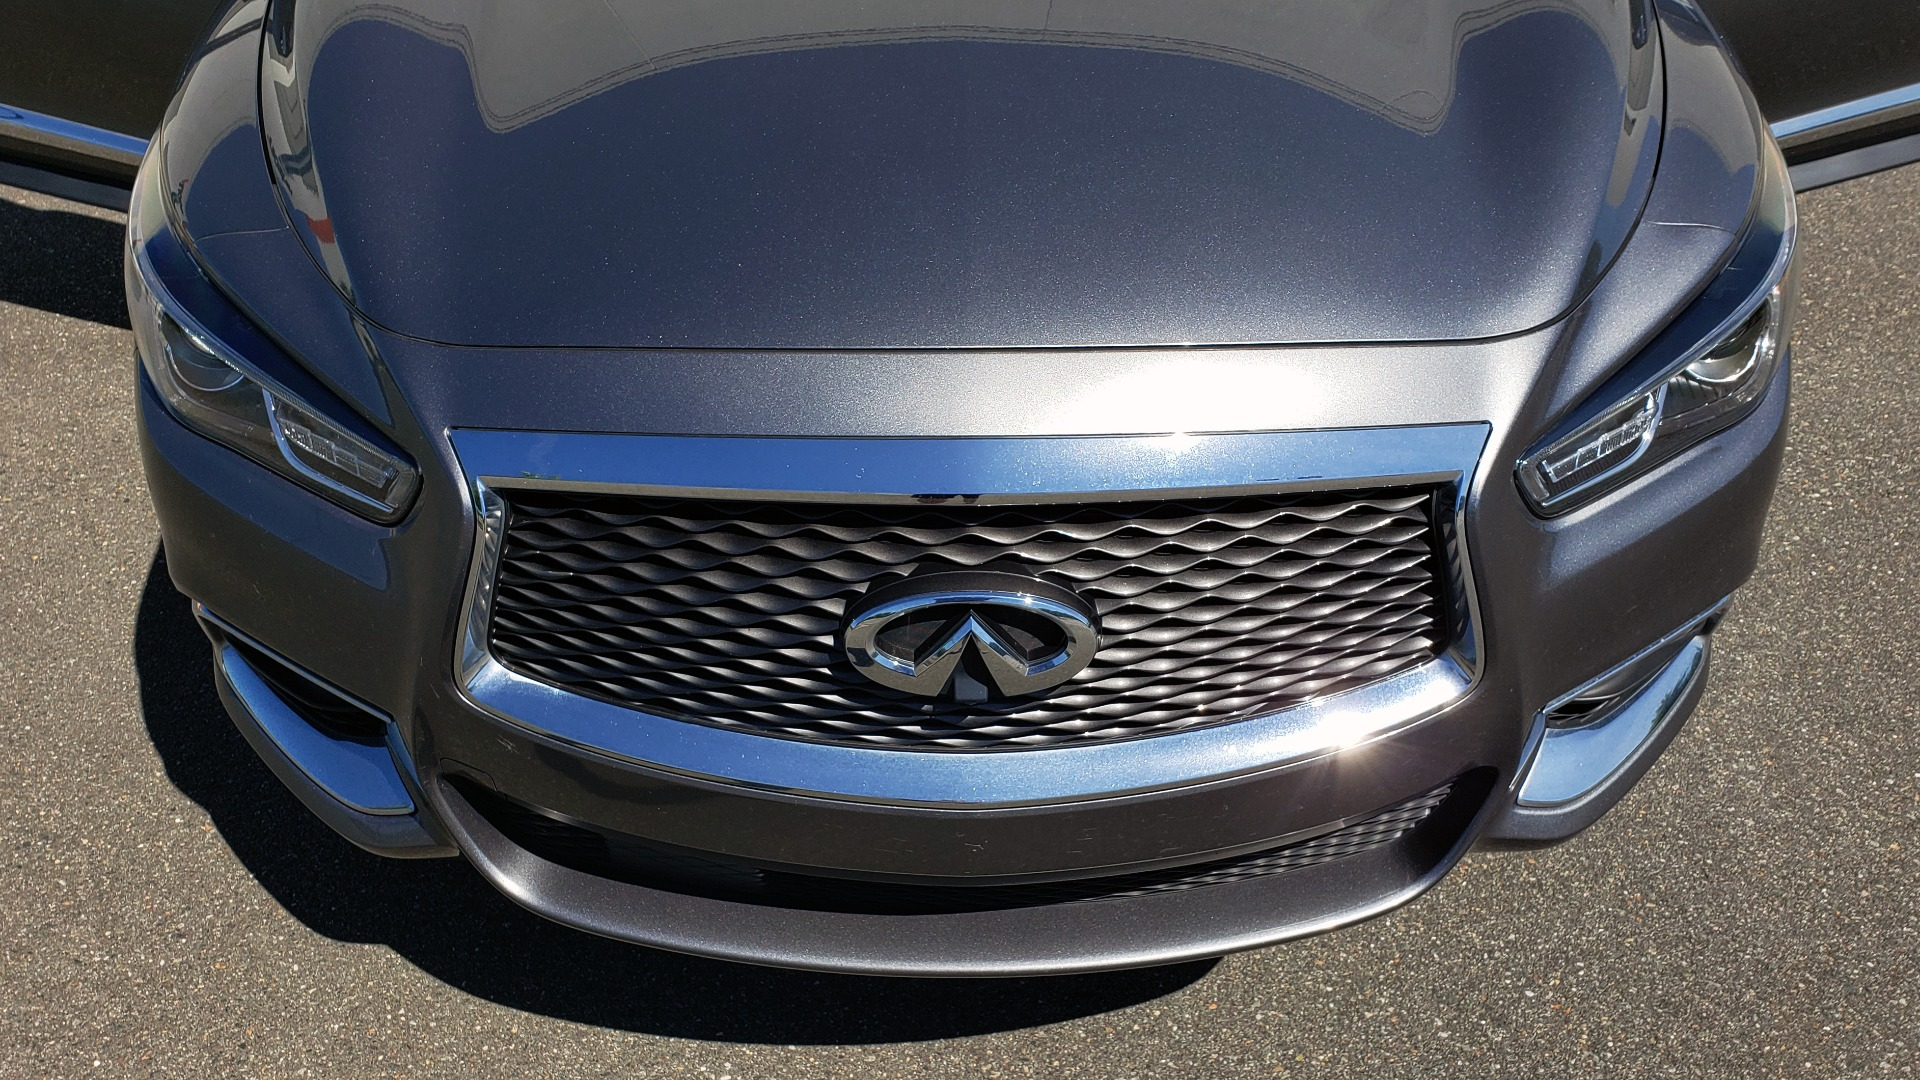 Used 2018 INFINITI QX60 3.5L V6 / FWD / CVT TRANS / NAV / SUNROOF / 3-ROWS / REARVIEW for sale $31,999 at Formula Imports in Charlotte NC 28227 29